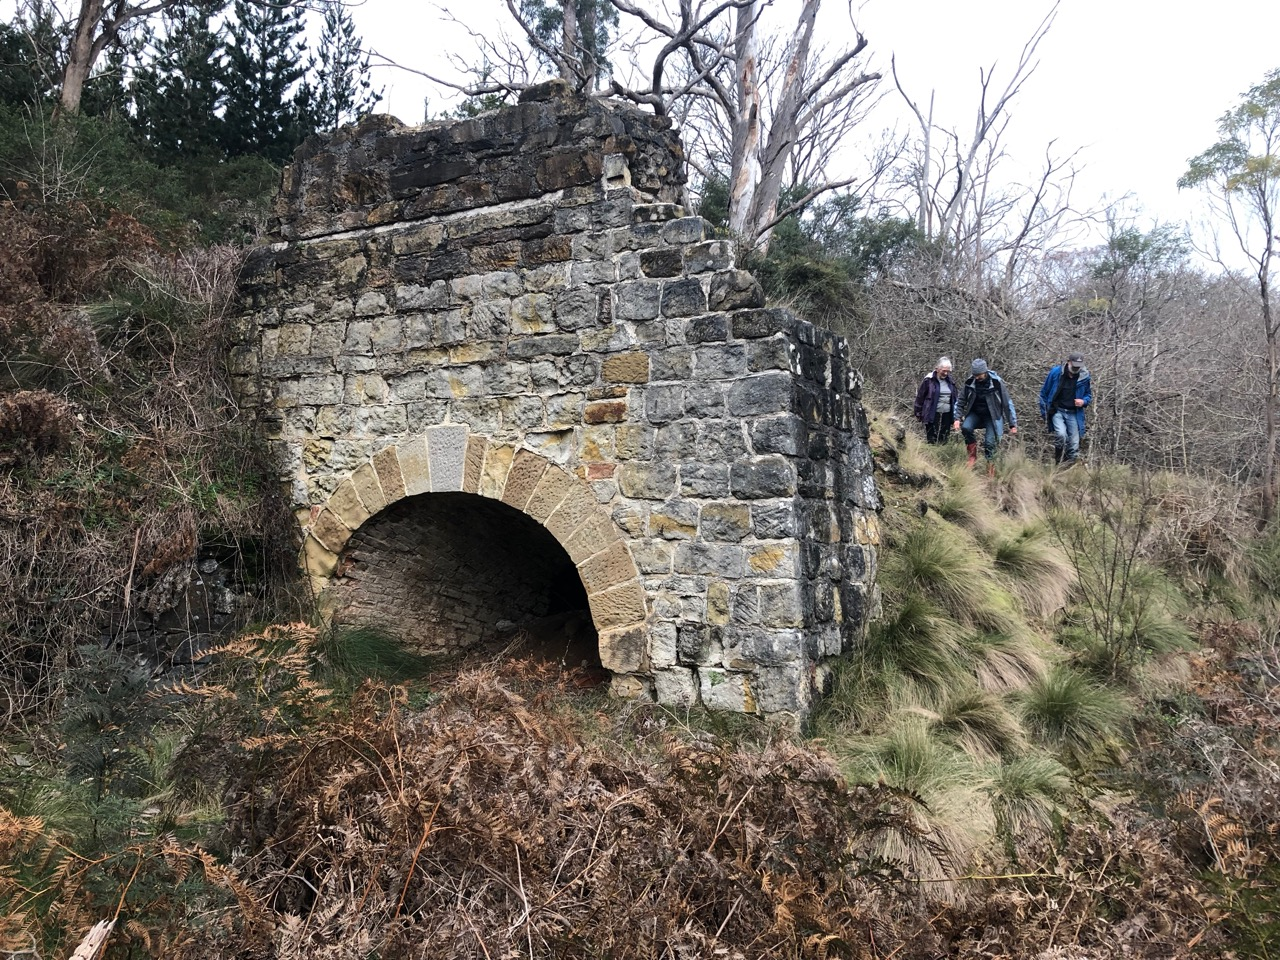 Figure 1: Middle Arm Convict Built Lime Kiln c. 1818. Photo: Darren Watton 2019.